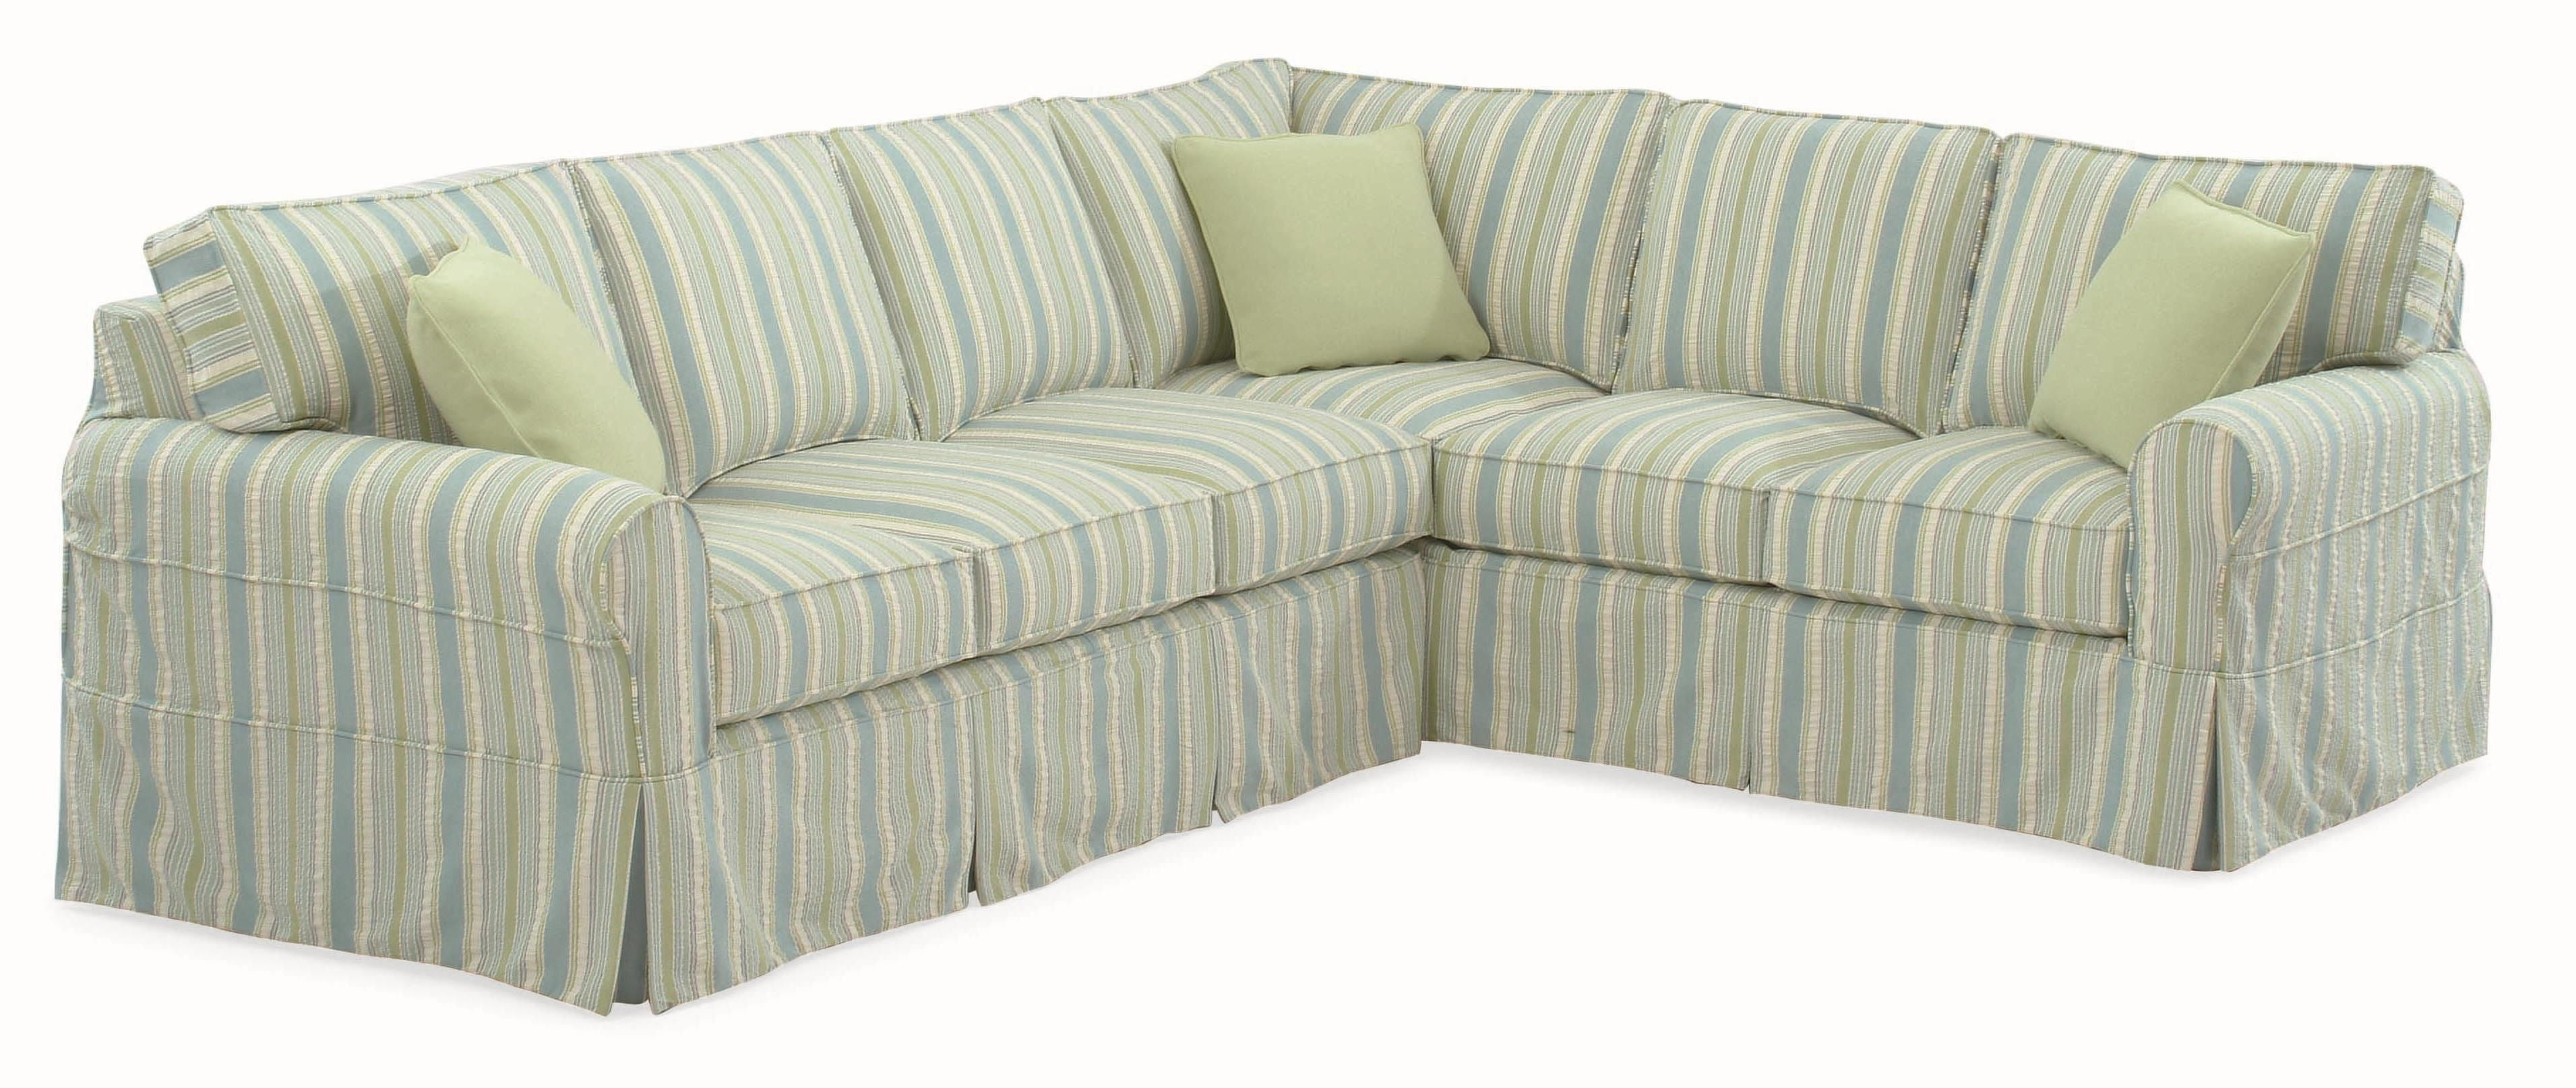 Sectional Sofa Slipcovers (View 13 of 15)